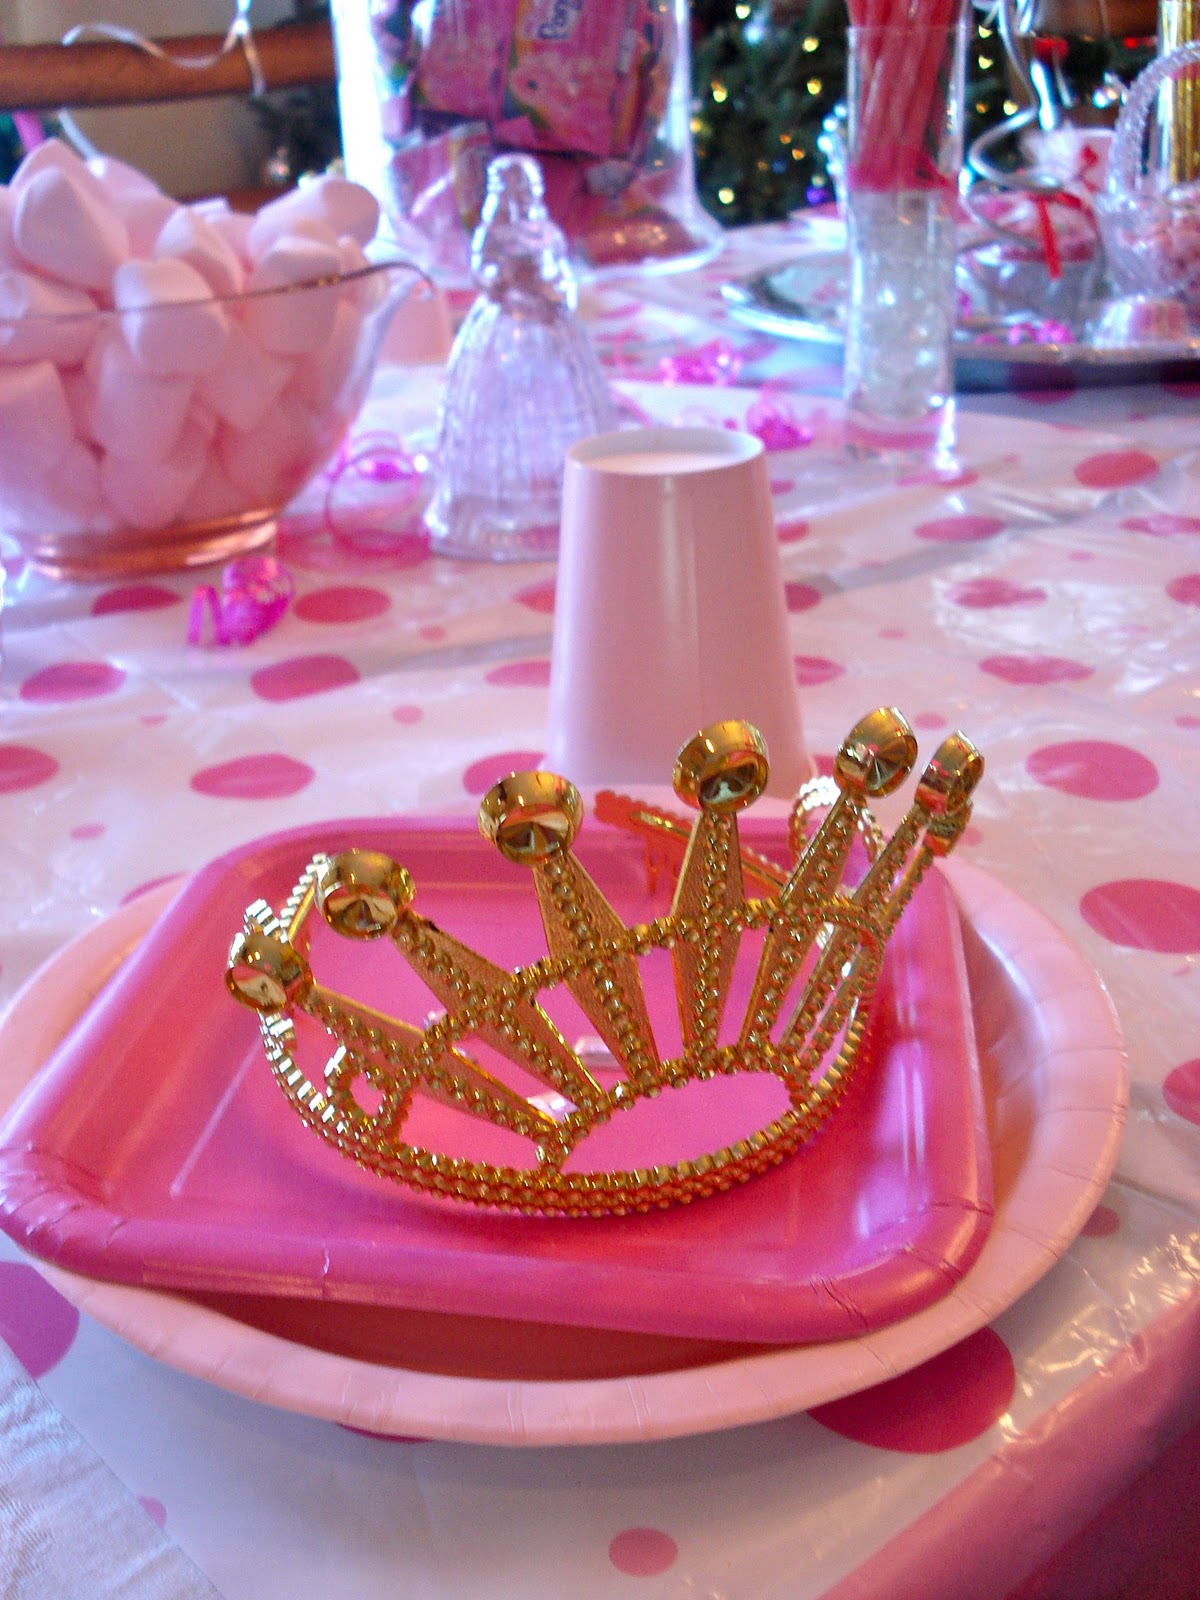 Women on a Mission: Mom Edition: PINKALICIOUS PARTY!